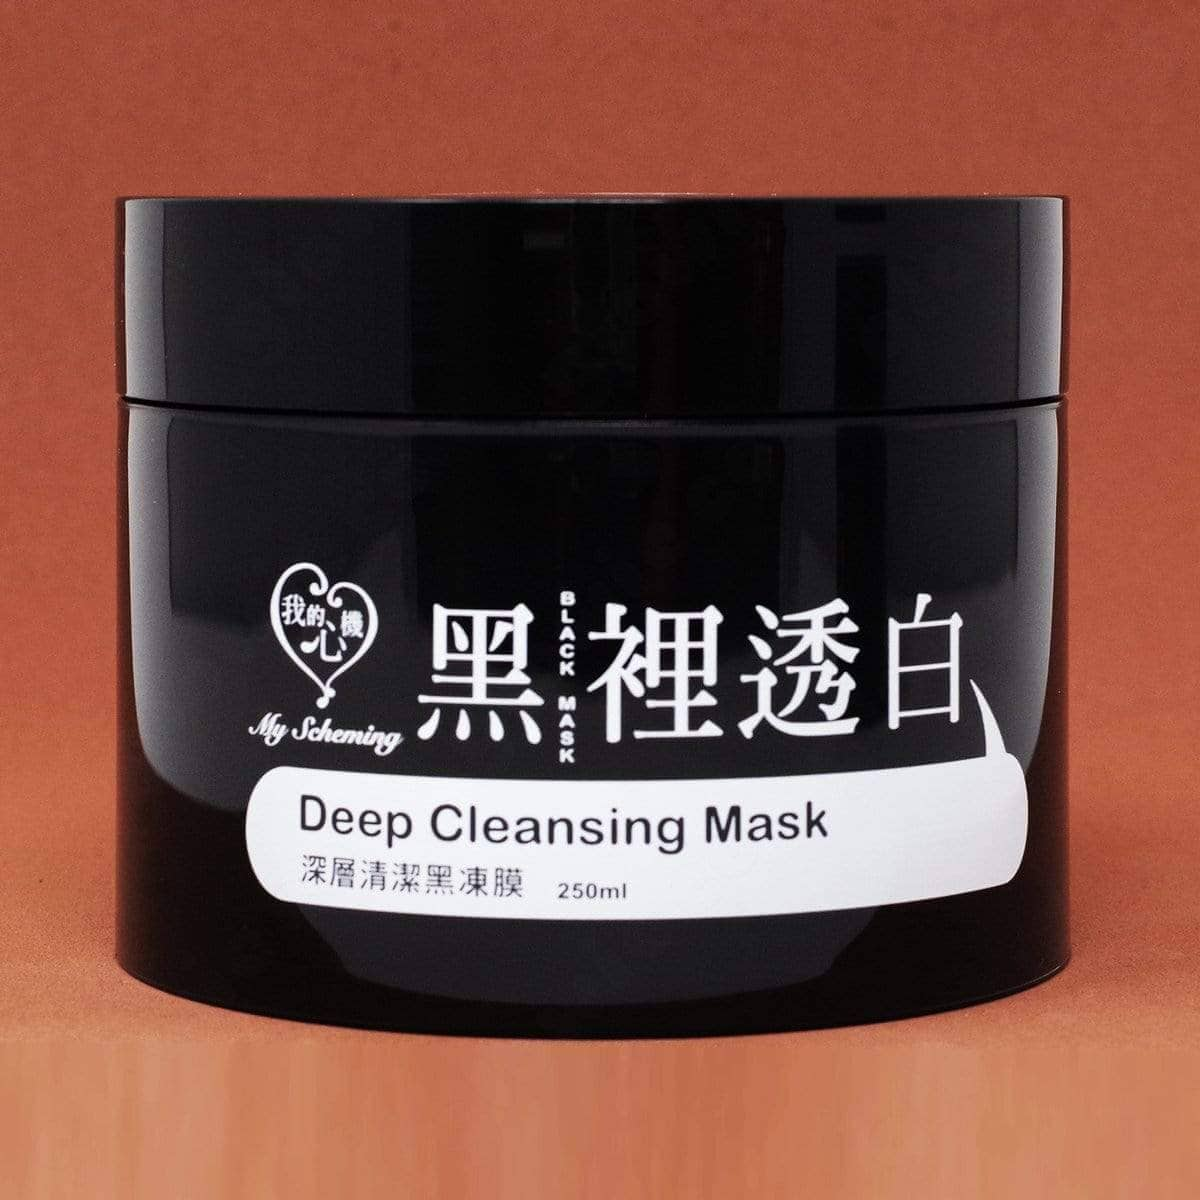 My Scheming Deep Cleansing Mask